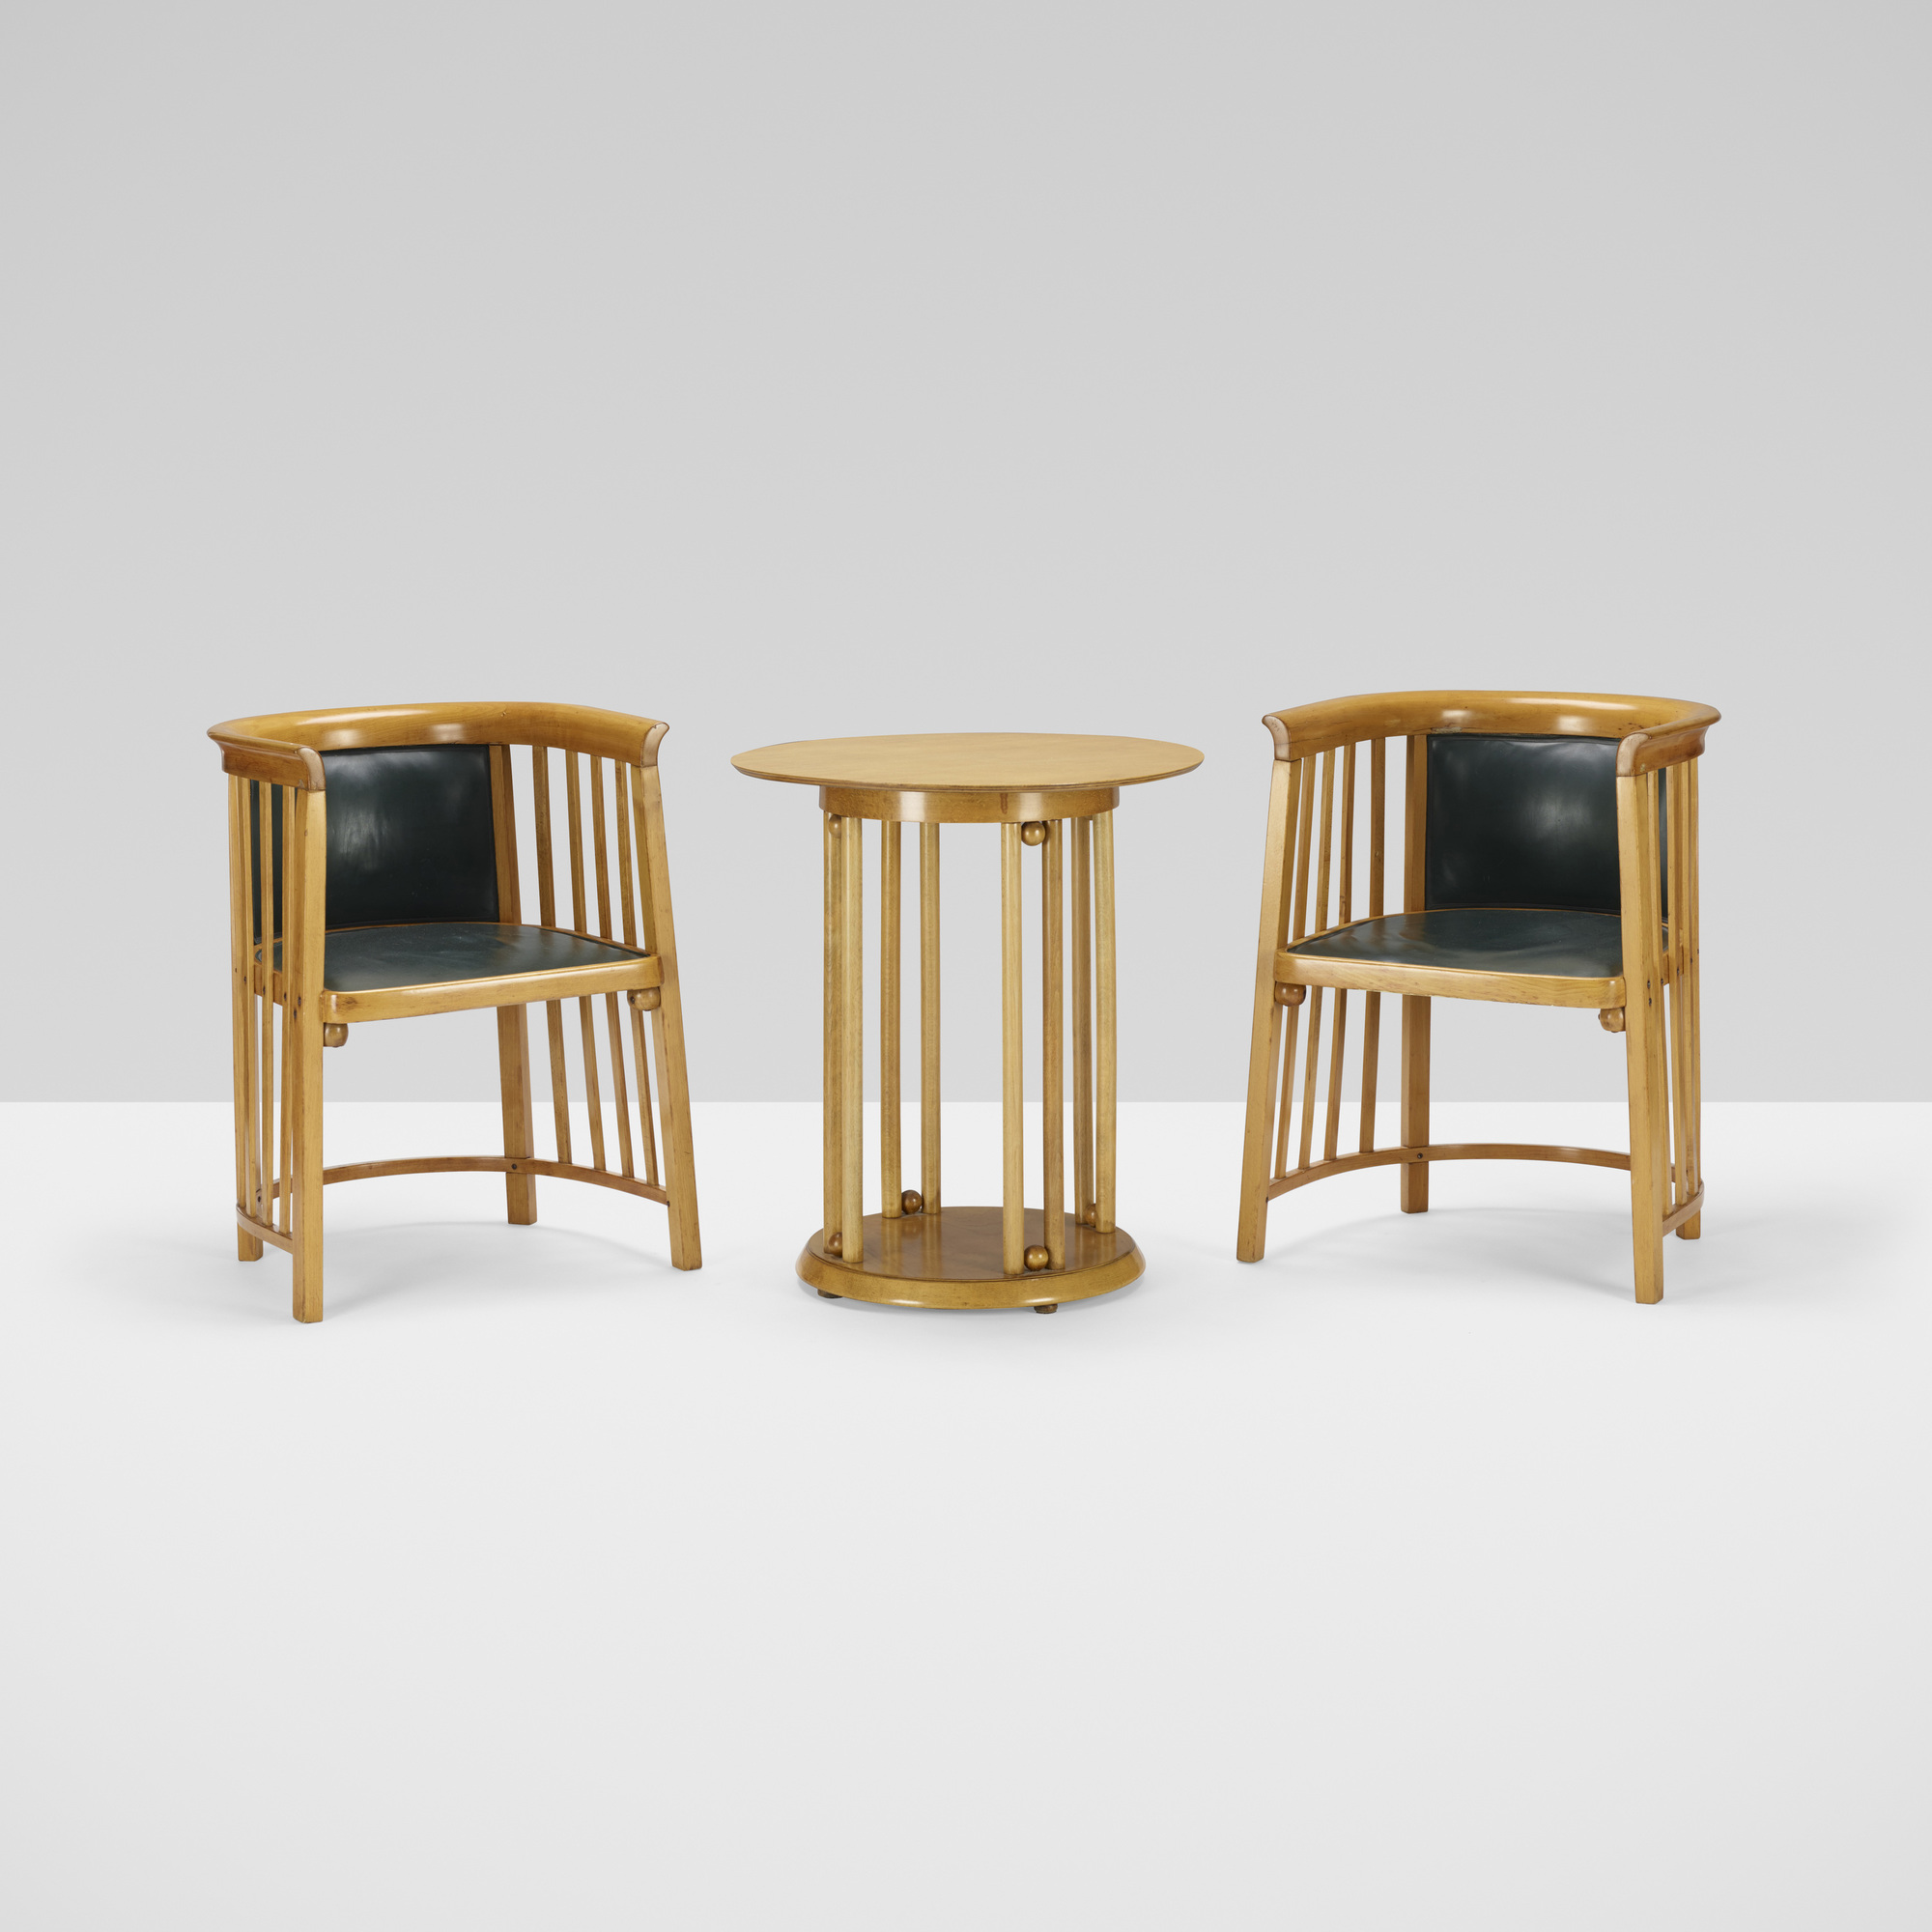 166: Josef Hoffmann / pair of chairs and occasional table (2 of 2)